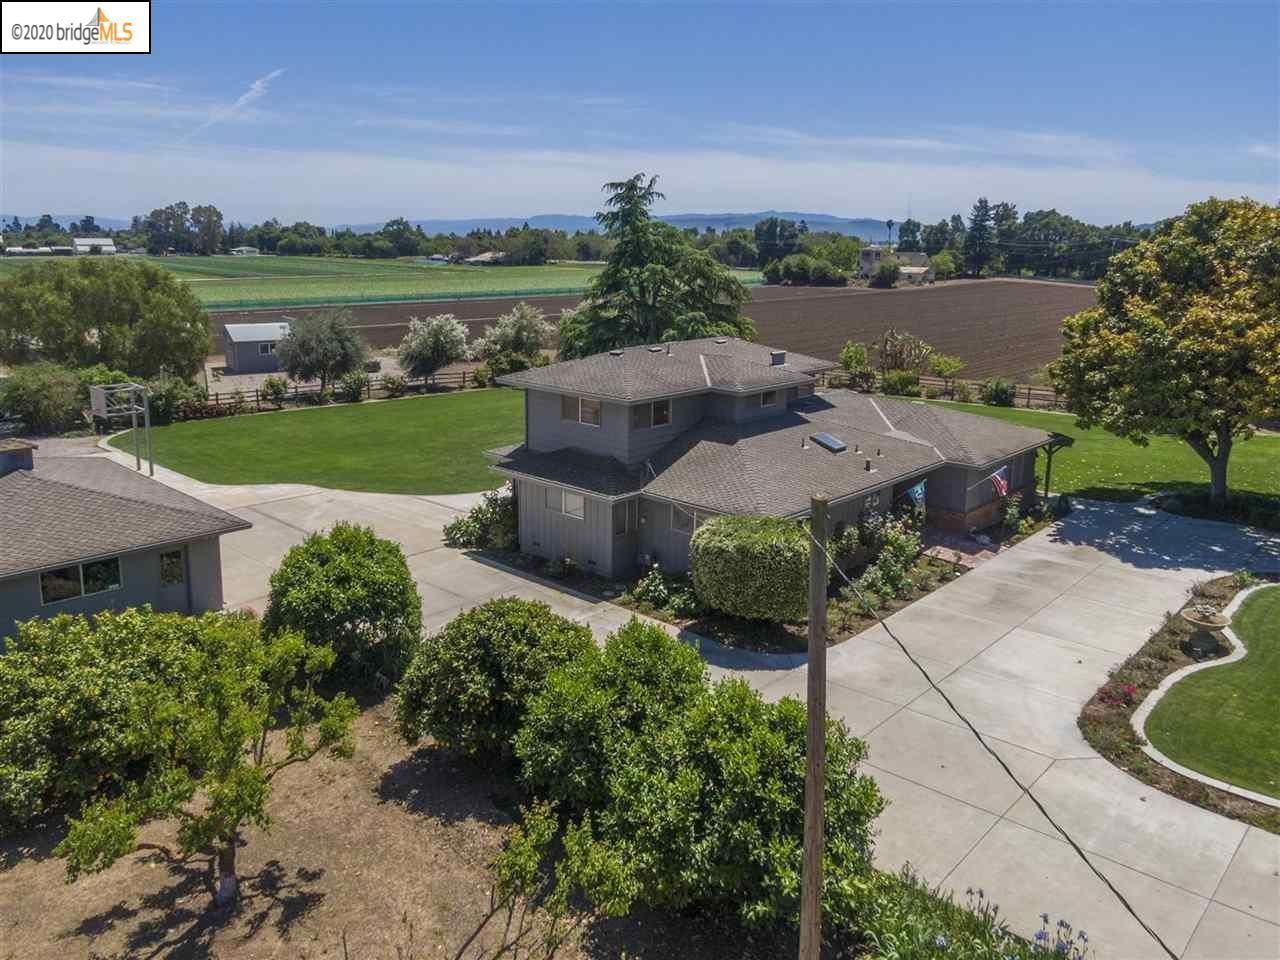 Property Image Of 6930 Holsclaw Rd In Gilroy, Ca